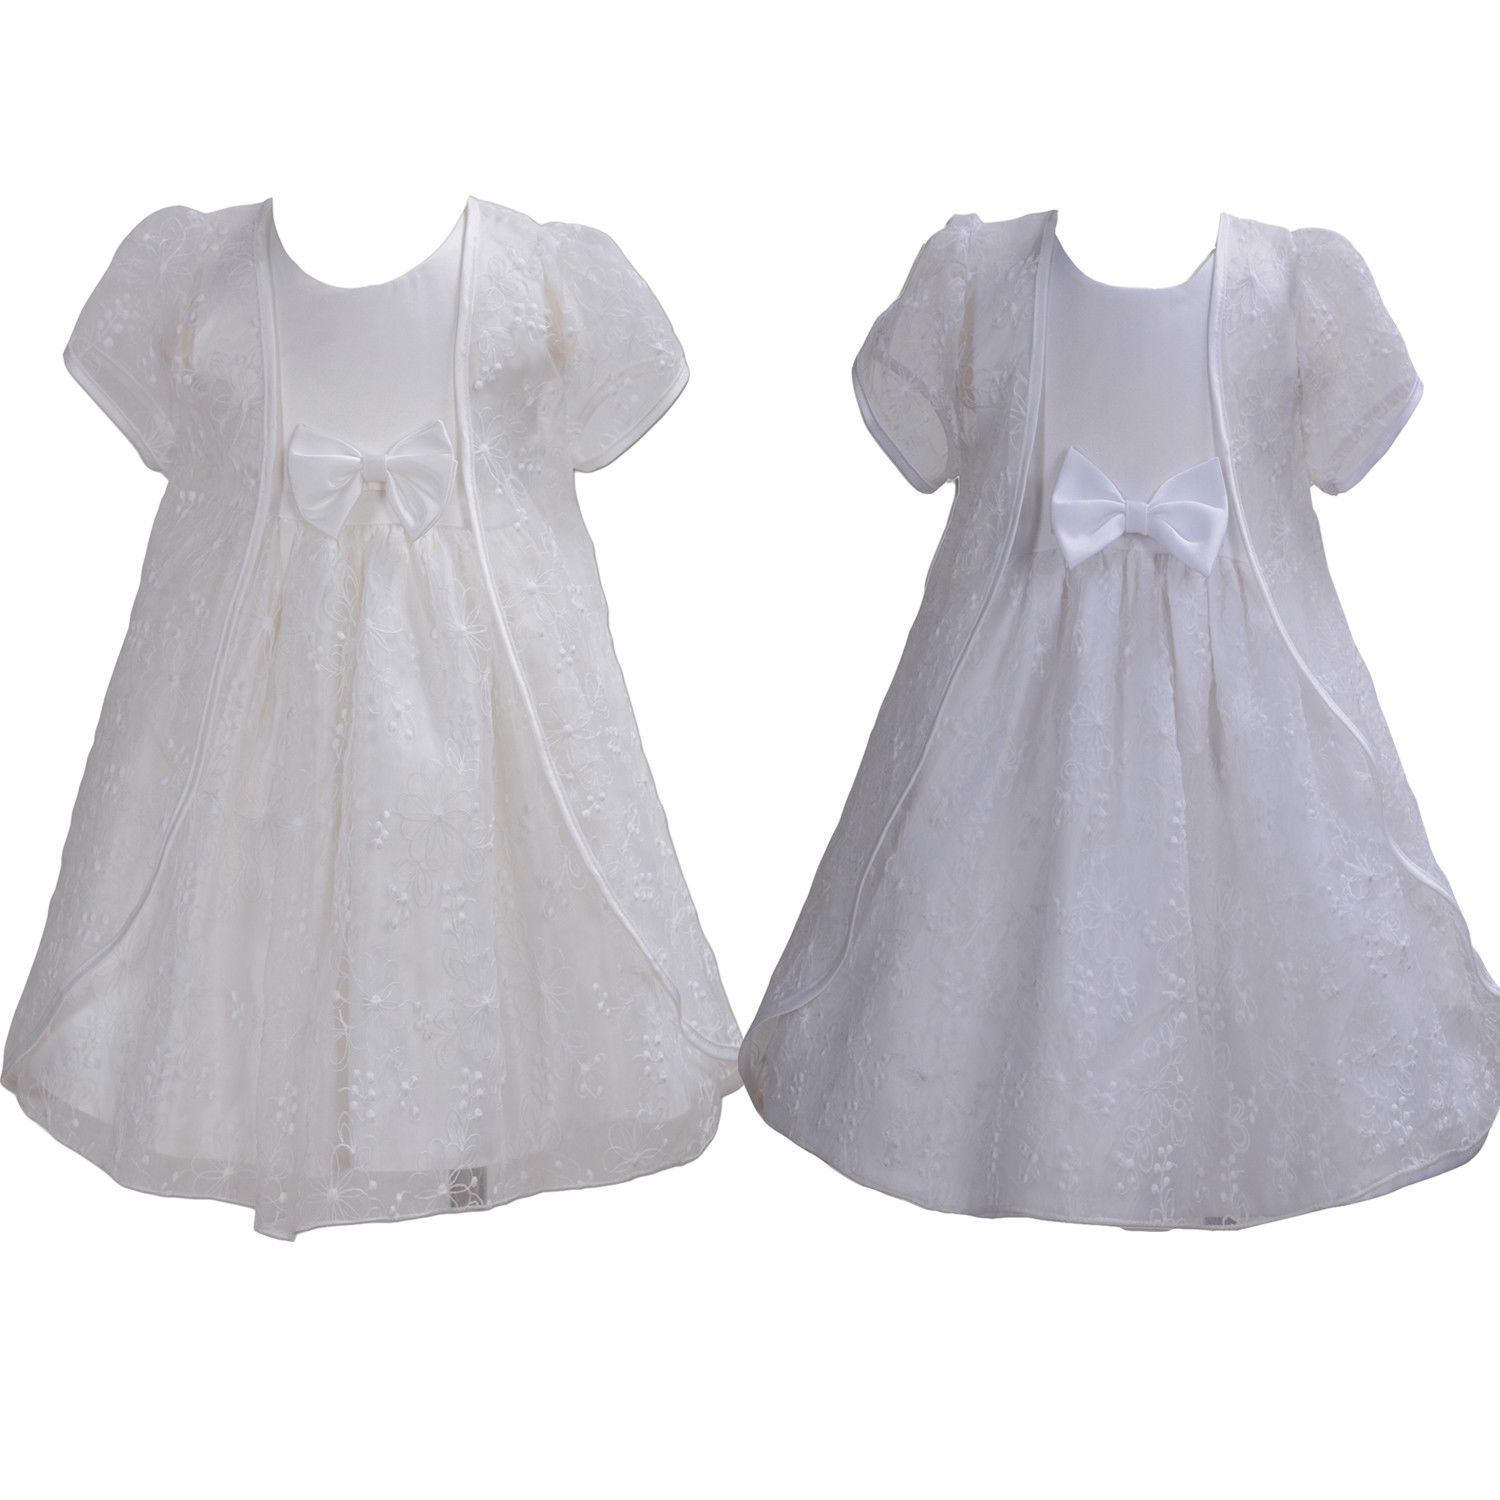 6c686f428 Baby Lace Christening Dress with Cape White and 50 similar items